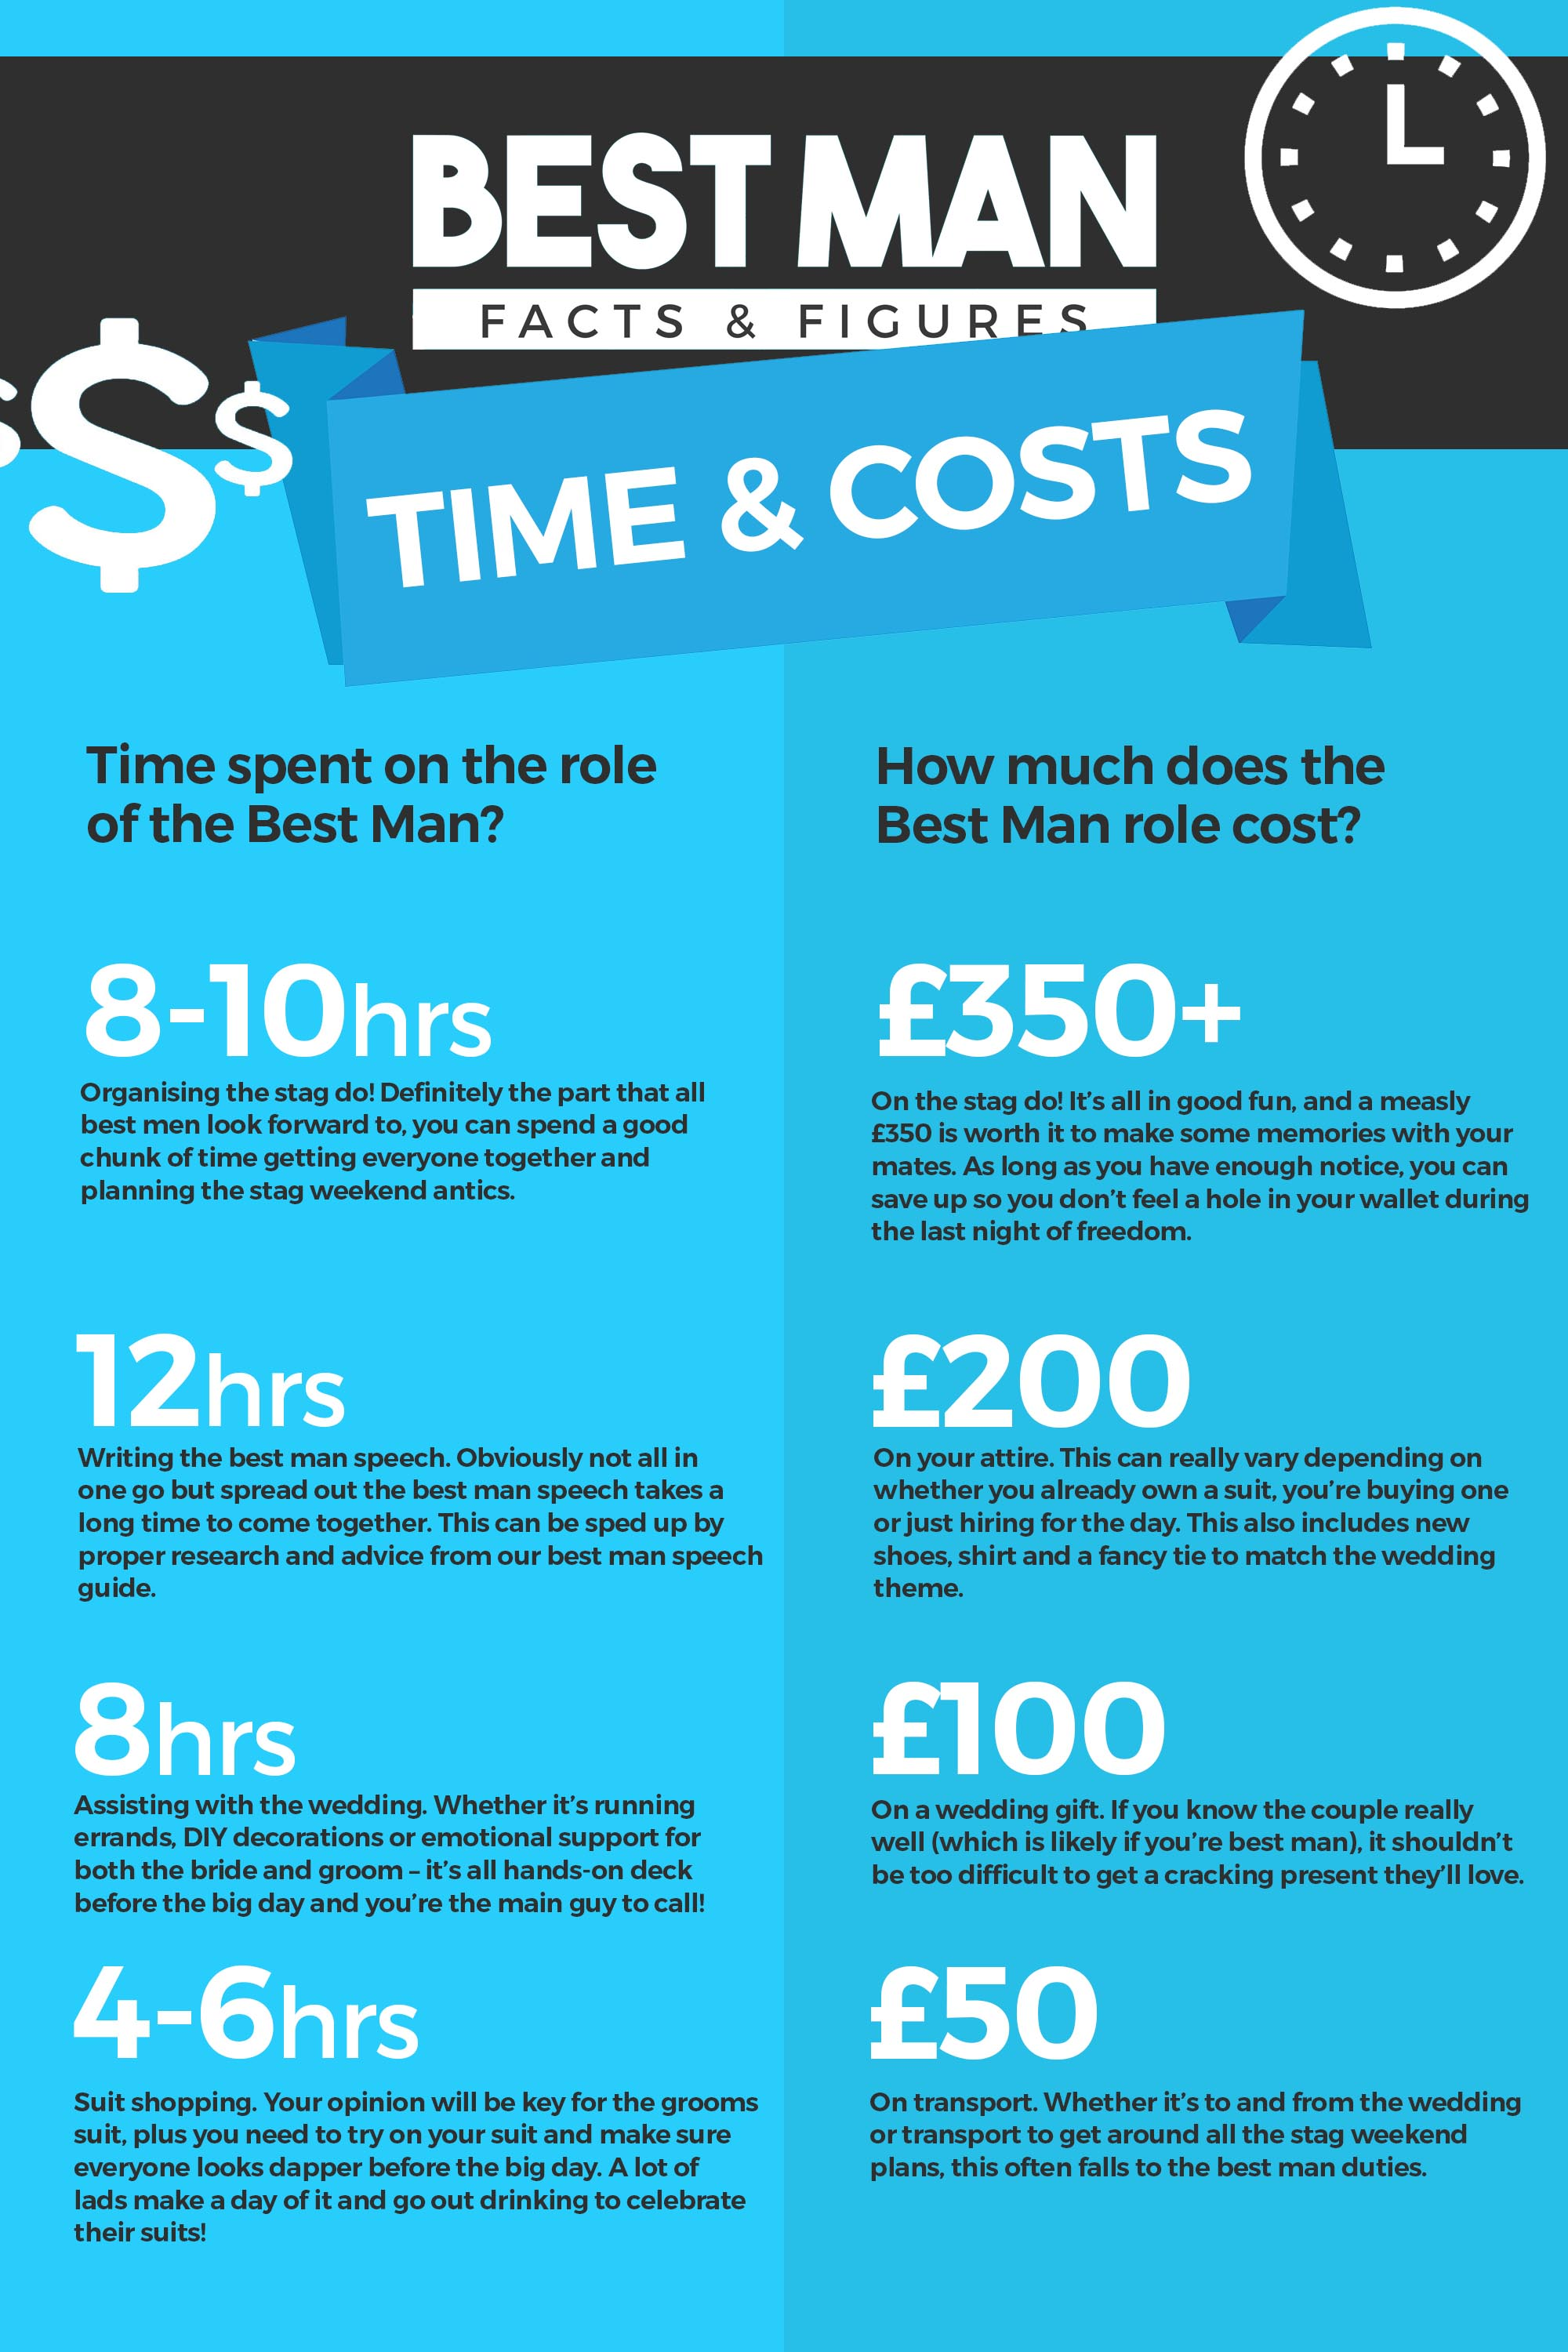 Best Man Facts & Figures - Time & Costs